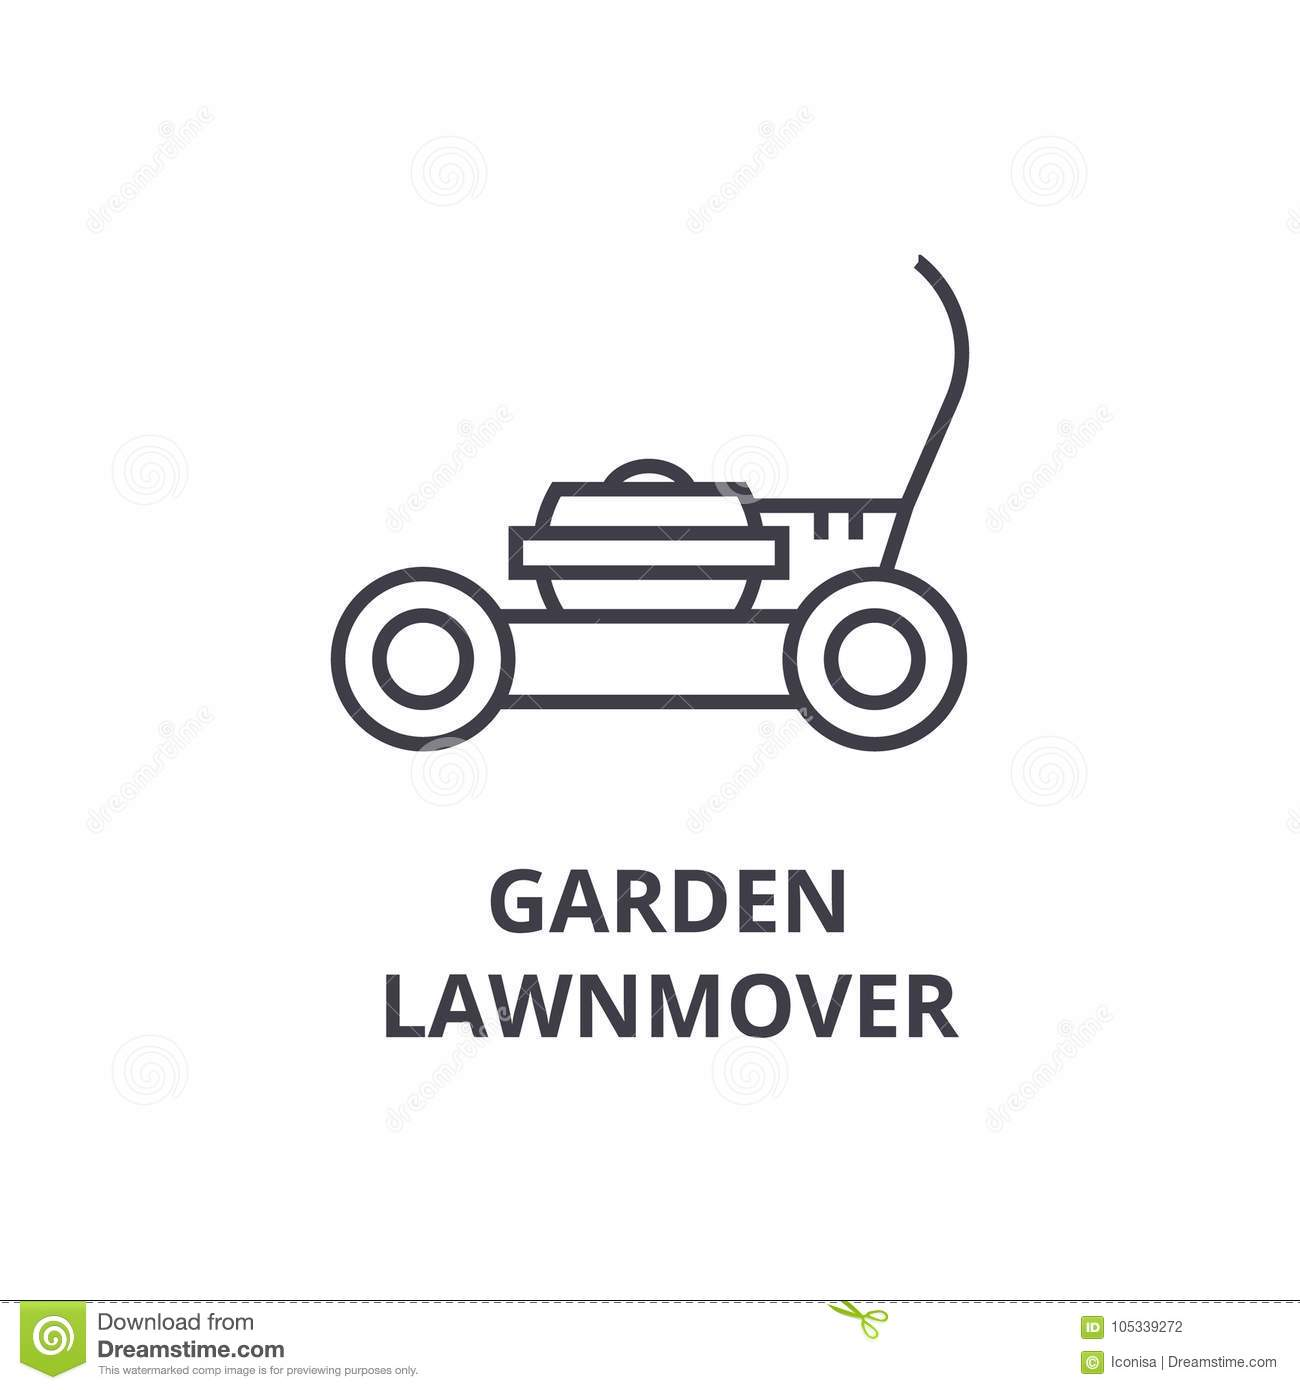 Lawn Mover Ready To Use Royalty Free Stock Image